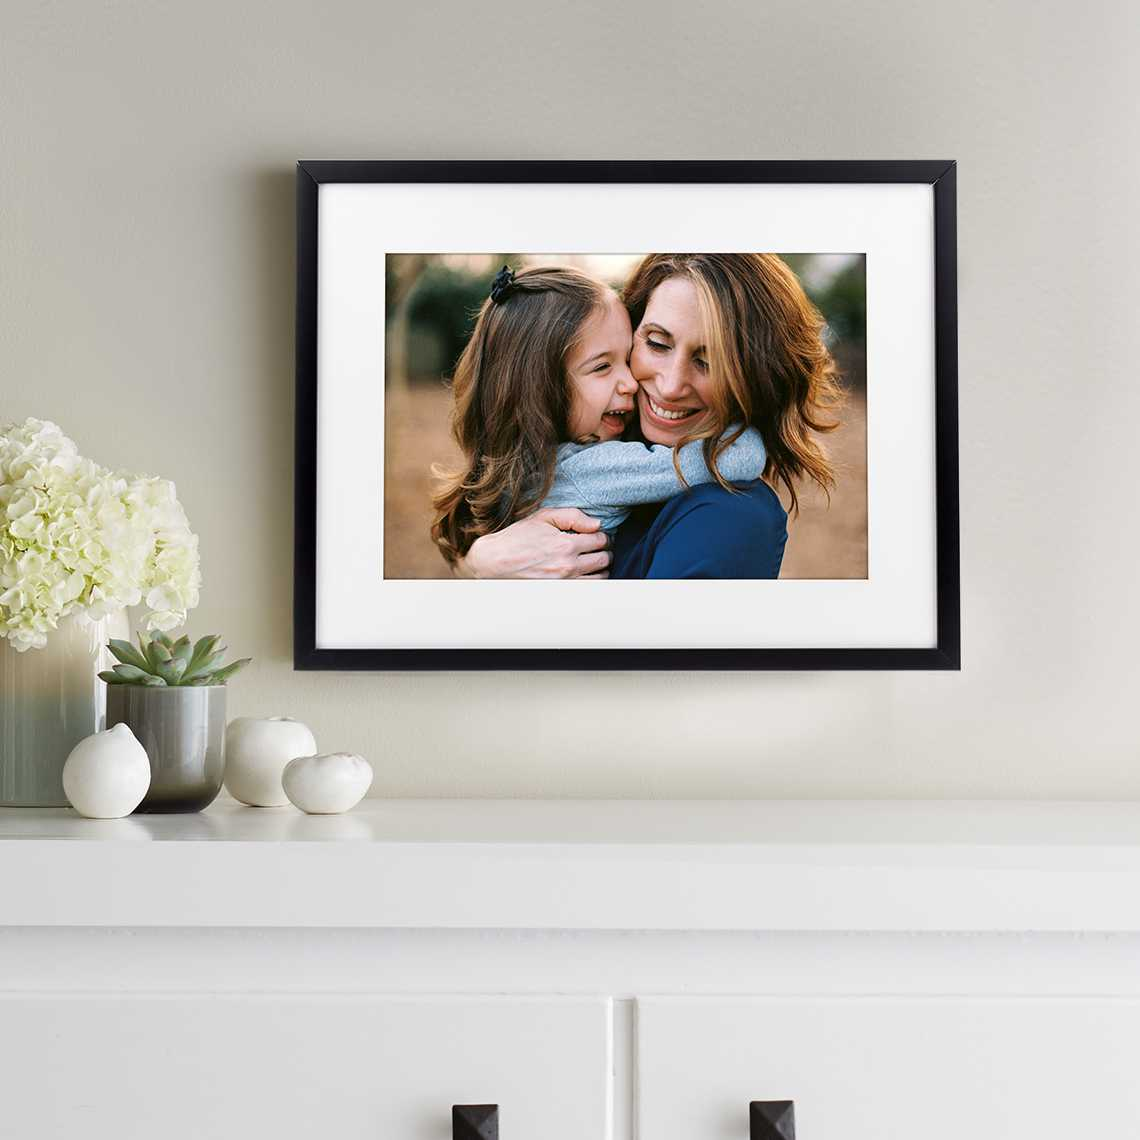 Framed Matted Print, Natural, 8x12 | Framed Matted Prints | Prints ...